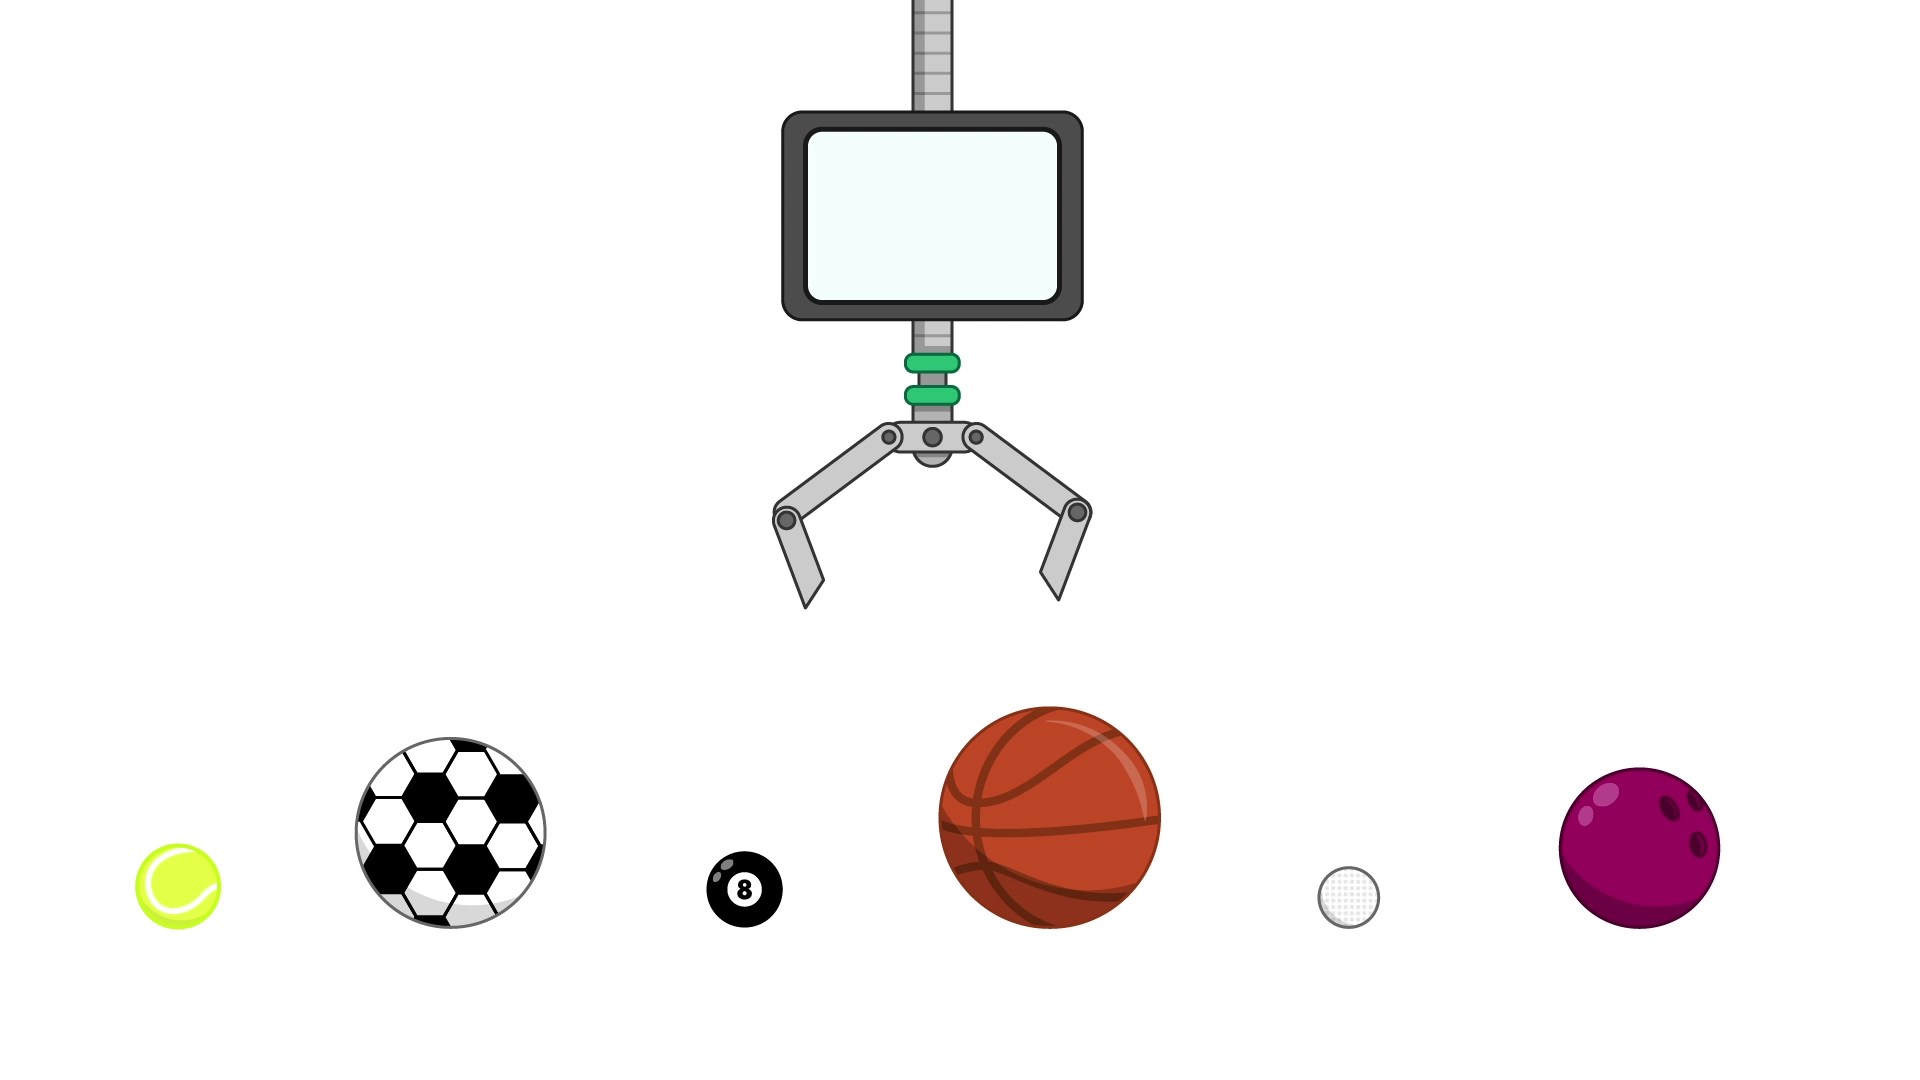 Six unsorted balls in a line, with a robotic claw with a screen above them. In order from left to right, the balls are a tennis ball, a soccer ball, a pool ball, a basketball, a golf ball and a bowling ball.